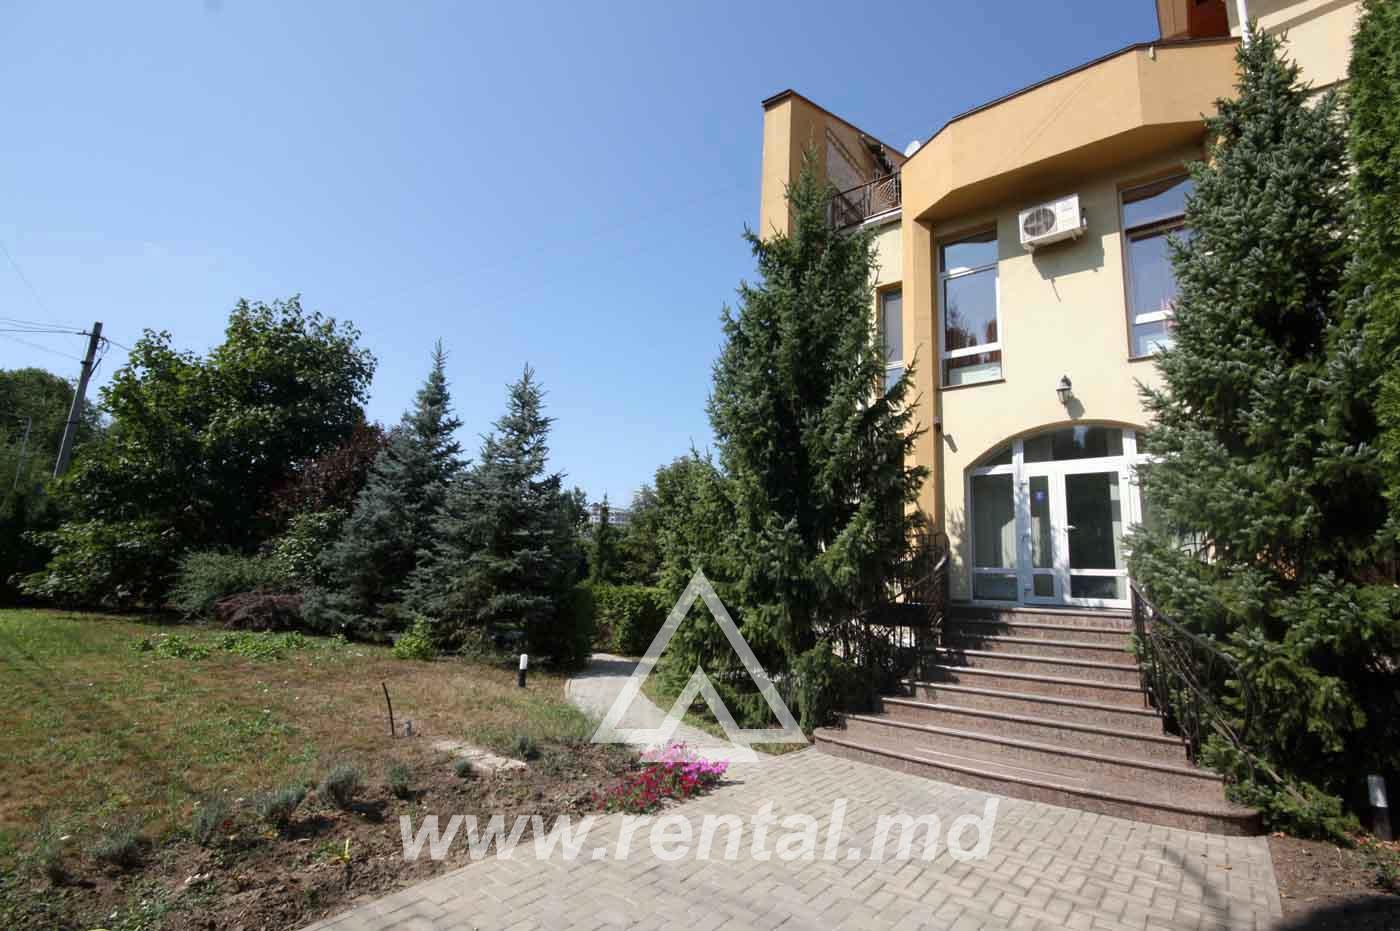 House for Residential or Office Rent in Chisinau